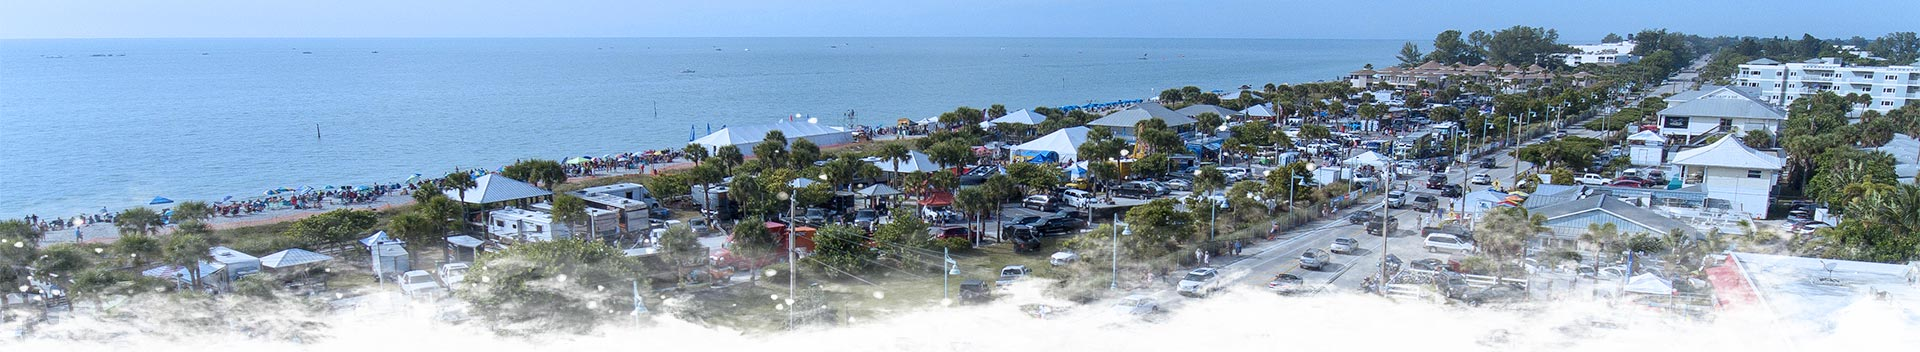 Englewood Beach Aerial View